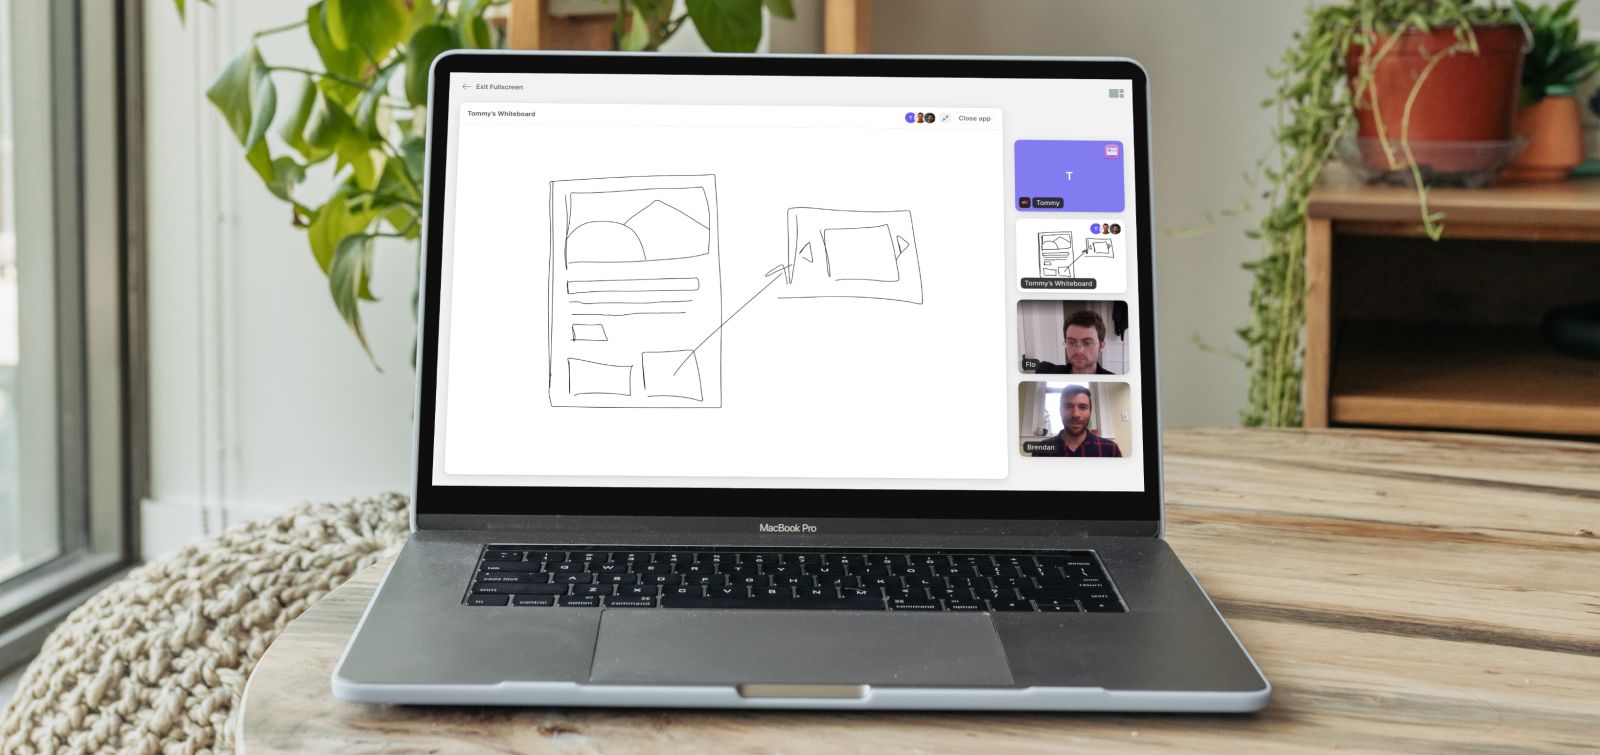 Whiteboarding Tips for Remote Teams